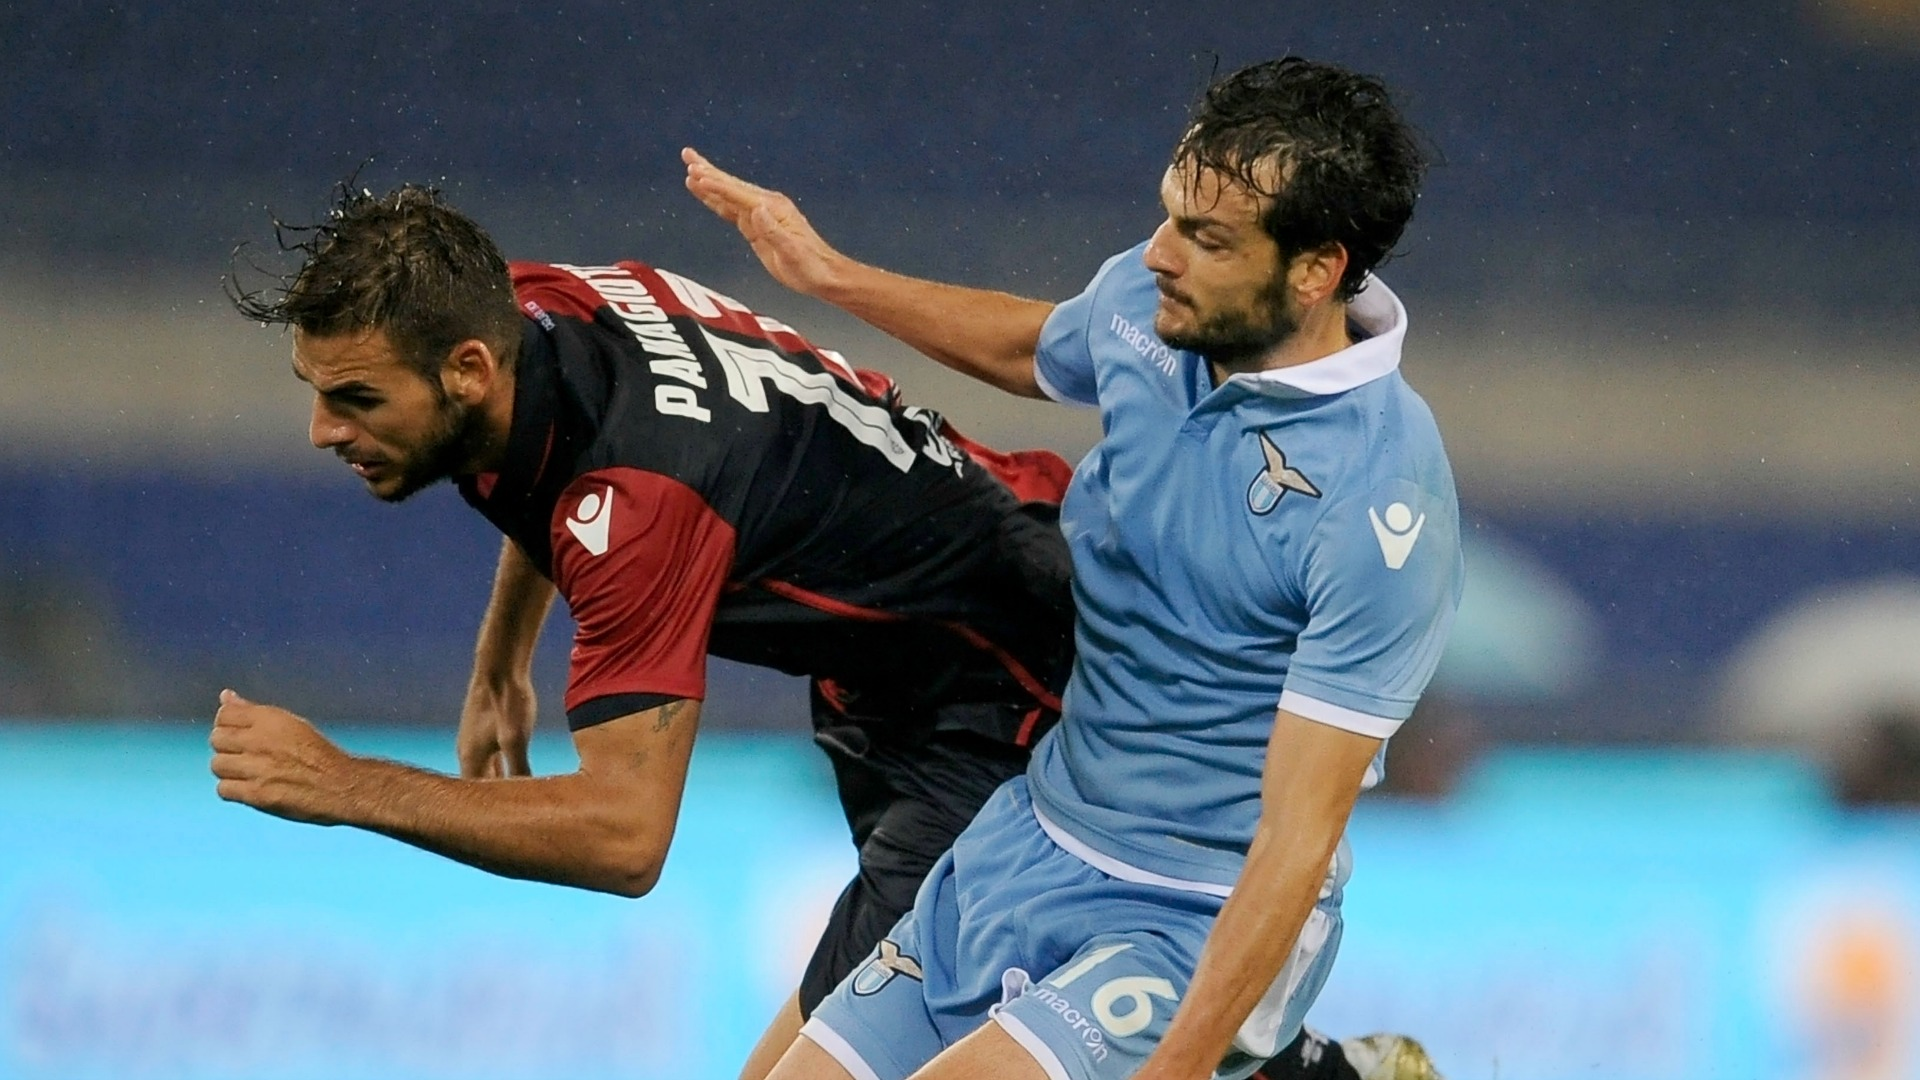 Highlights Lazio-Genoa 3-1: Video Gol e Sintesi Sky Sport (Serie A 2016-17)